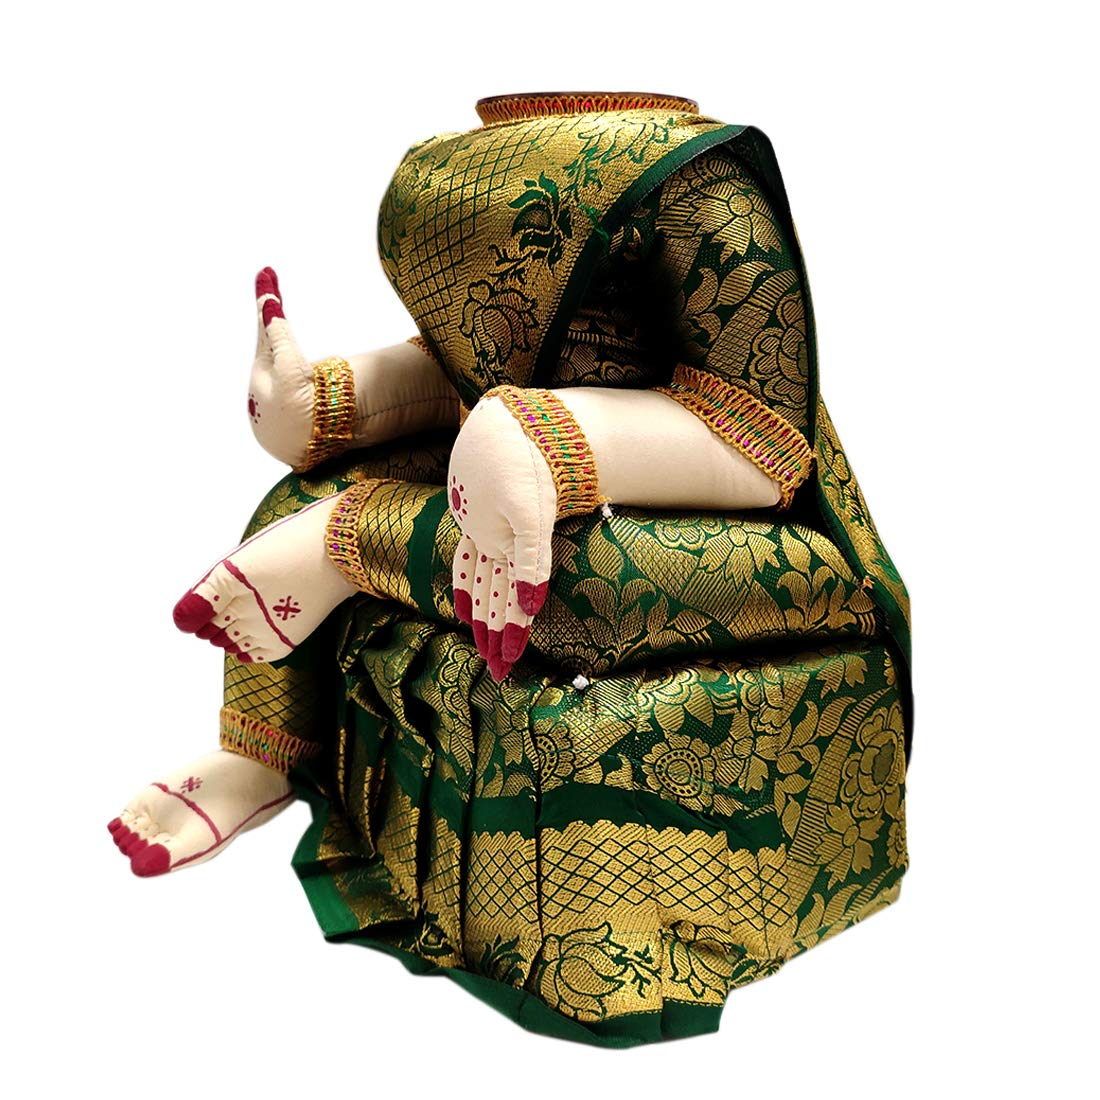 Divine Goddess Varalakshmi Nombu/Viradham/Pooja Decorative Doll With Inner Copper Coated Kalasa | Height: 9 Inches | Pack Of 1 Doll | Colour May Vary (Multicolor)